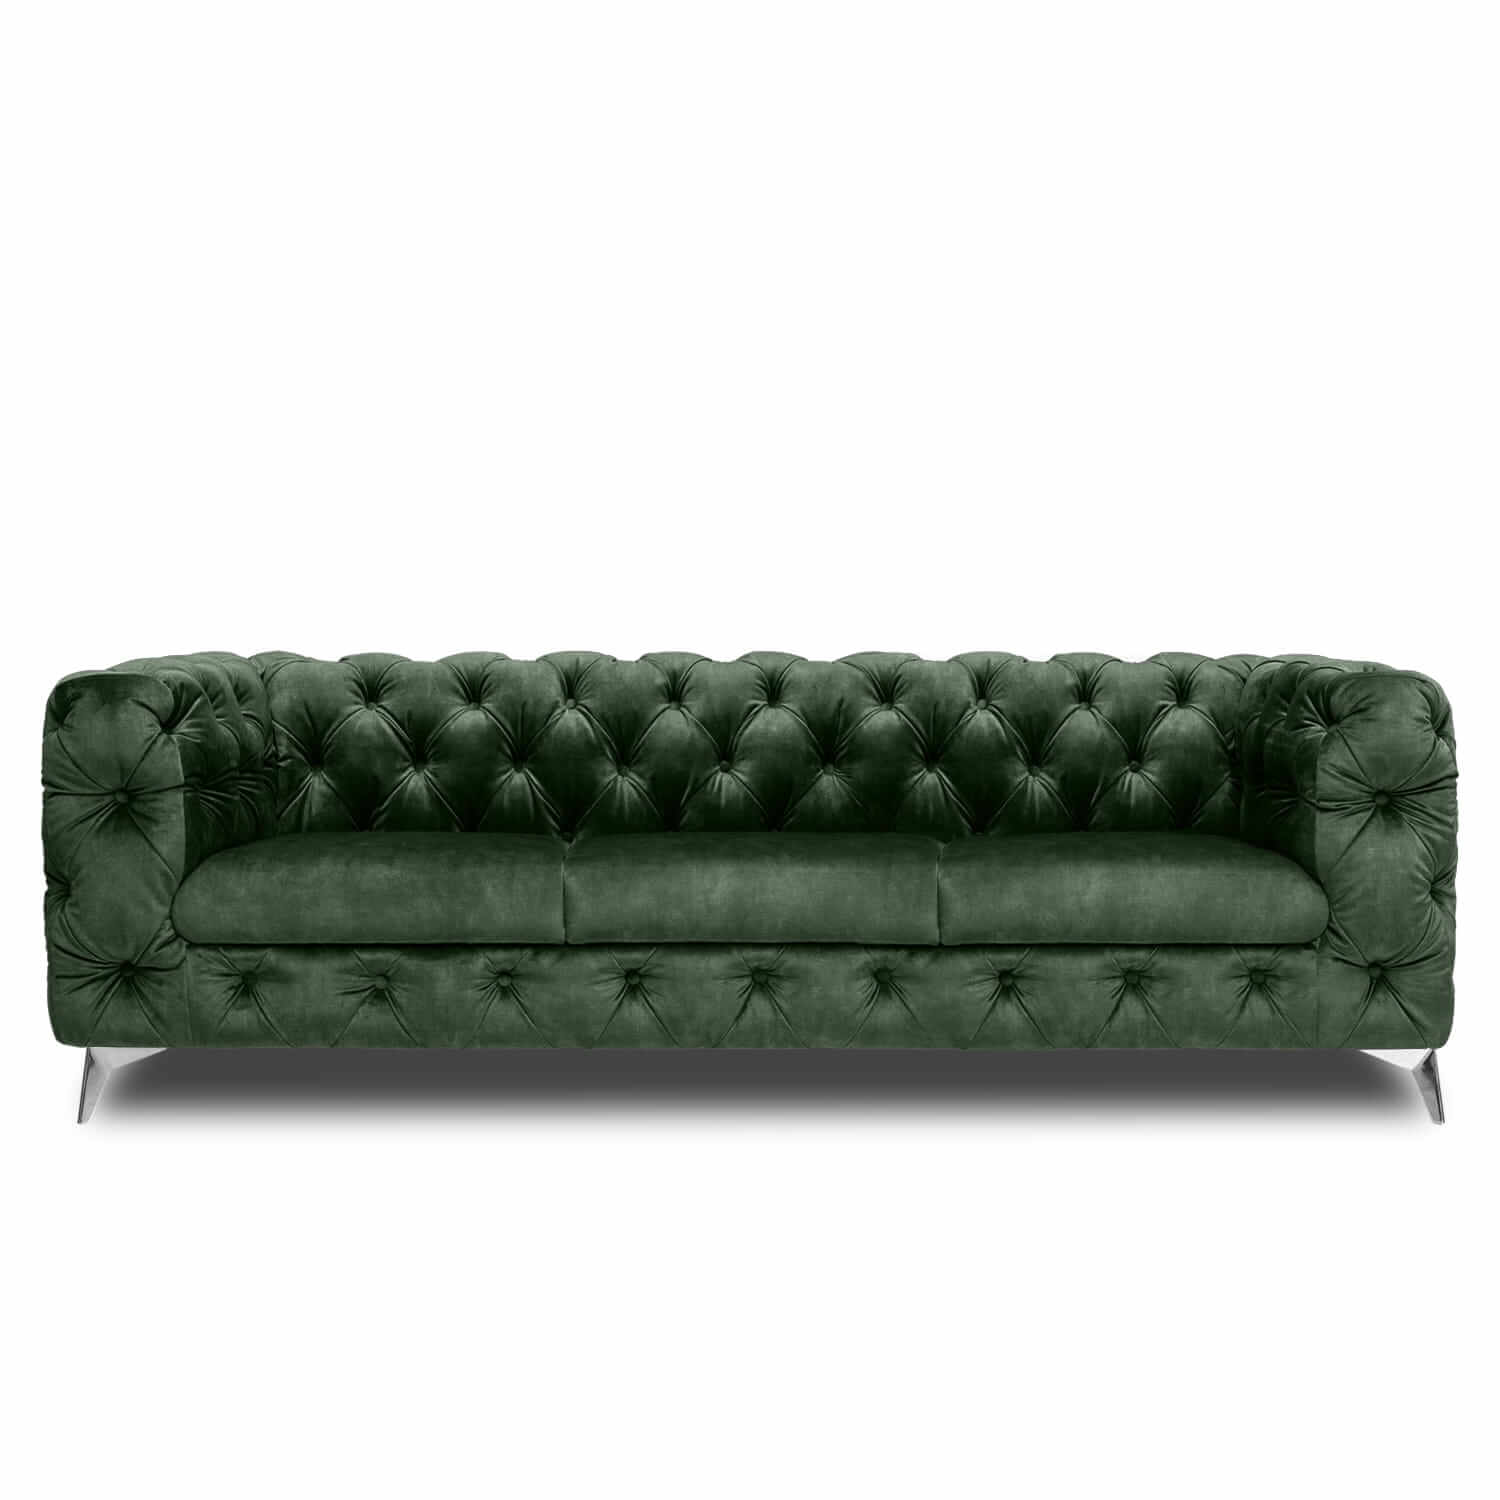 https://www.excluzive.se/wp-content/uploads/2020/10/Chesterfield-Martens-3-sits-Gron-1.jpg